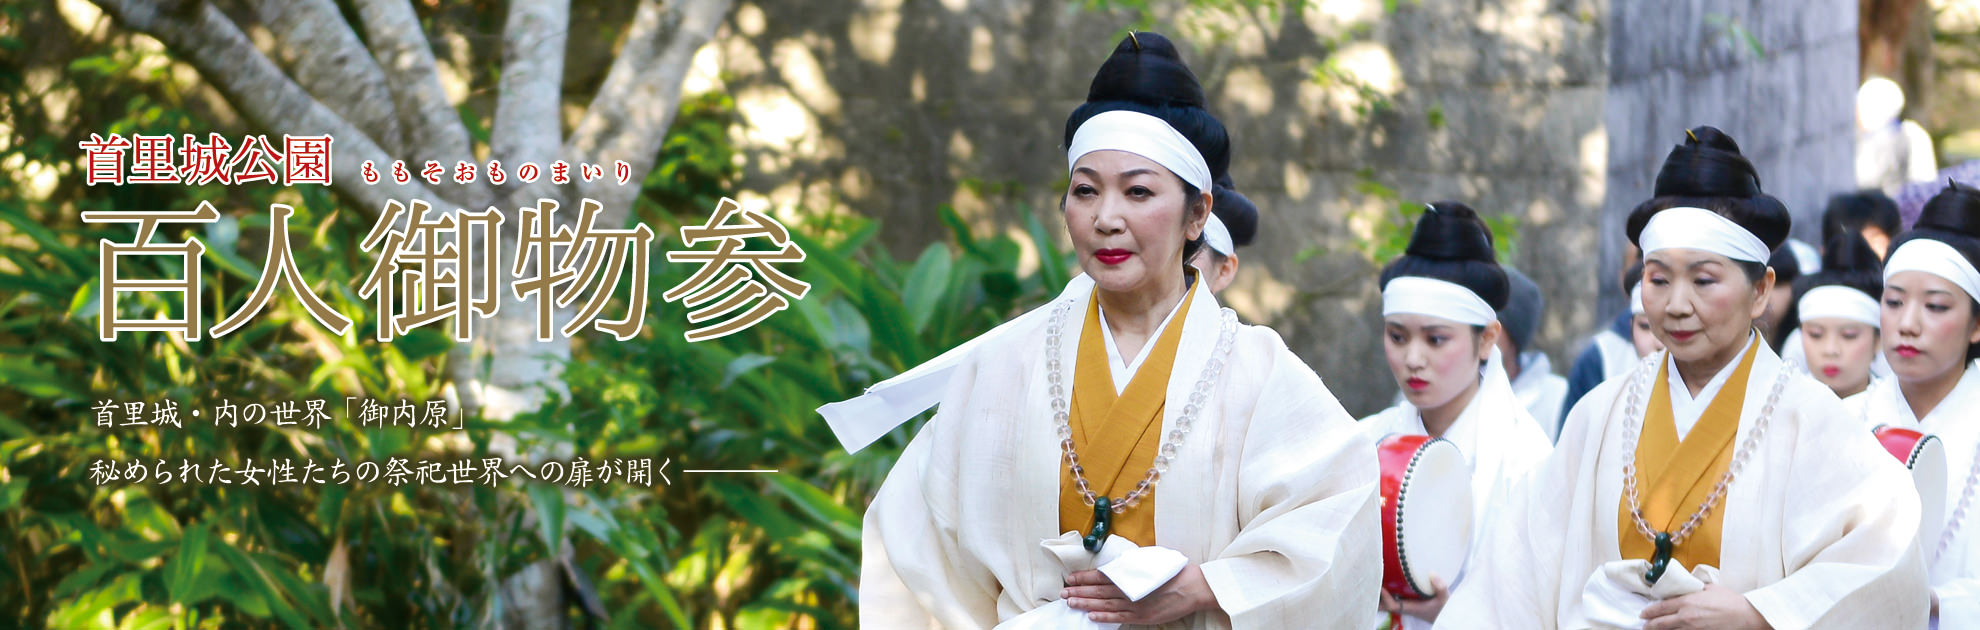 World ... of God woman controlling peace and security of - Ryukyu where 100 magistrates in charge of managing the shogunate's private property come (momosoomonomairi)